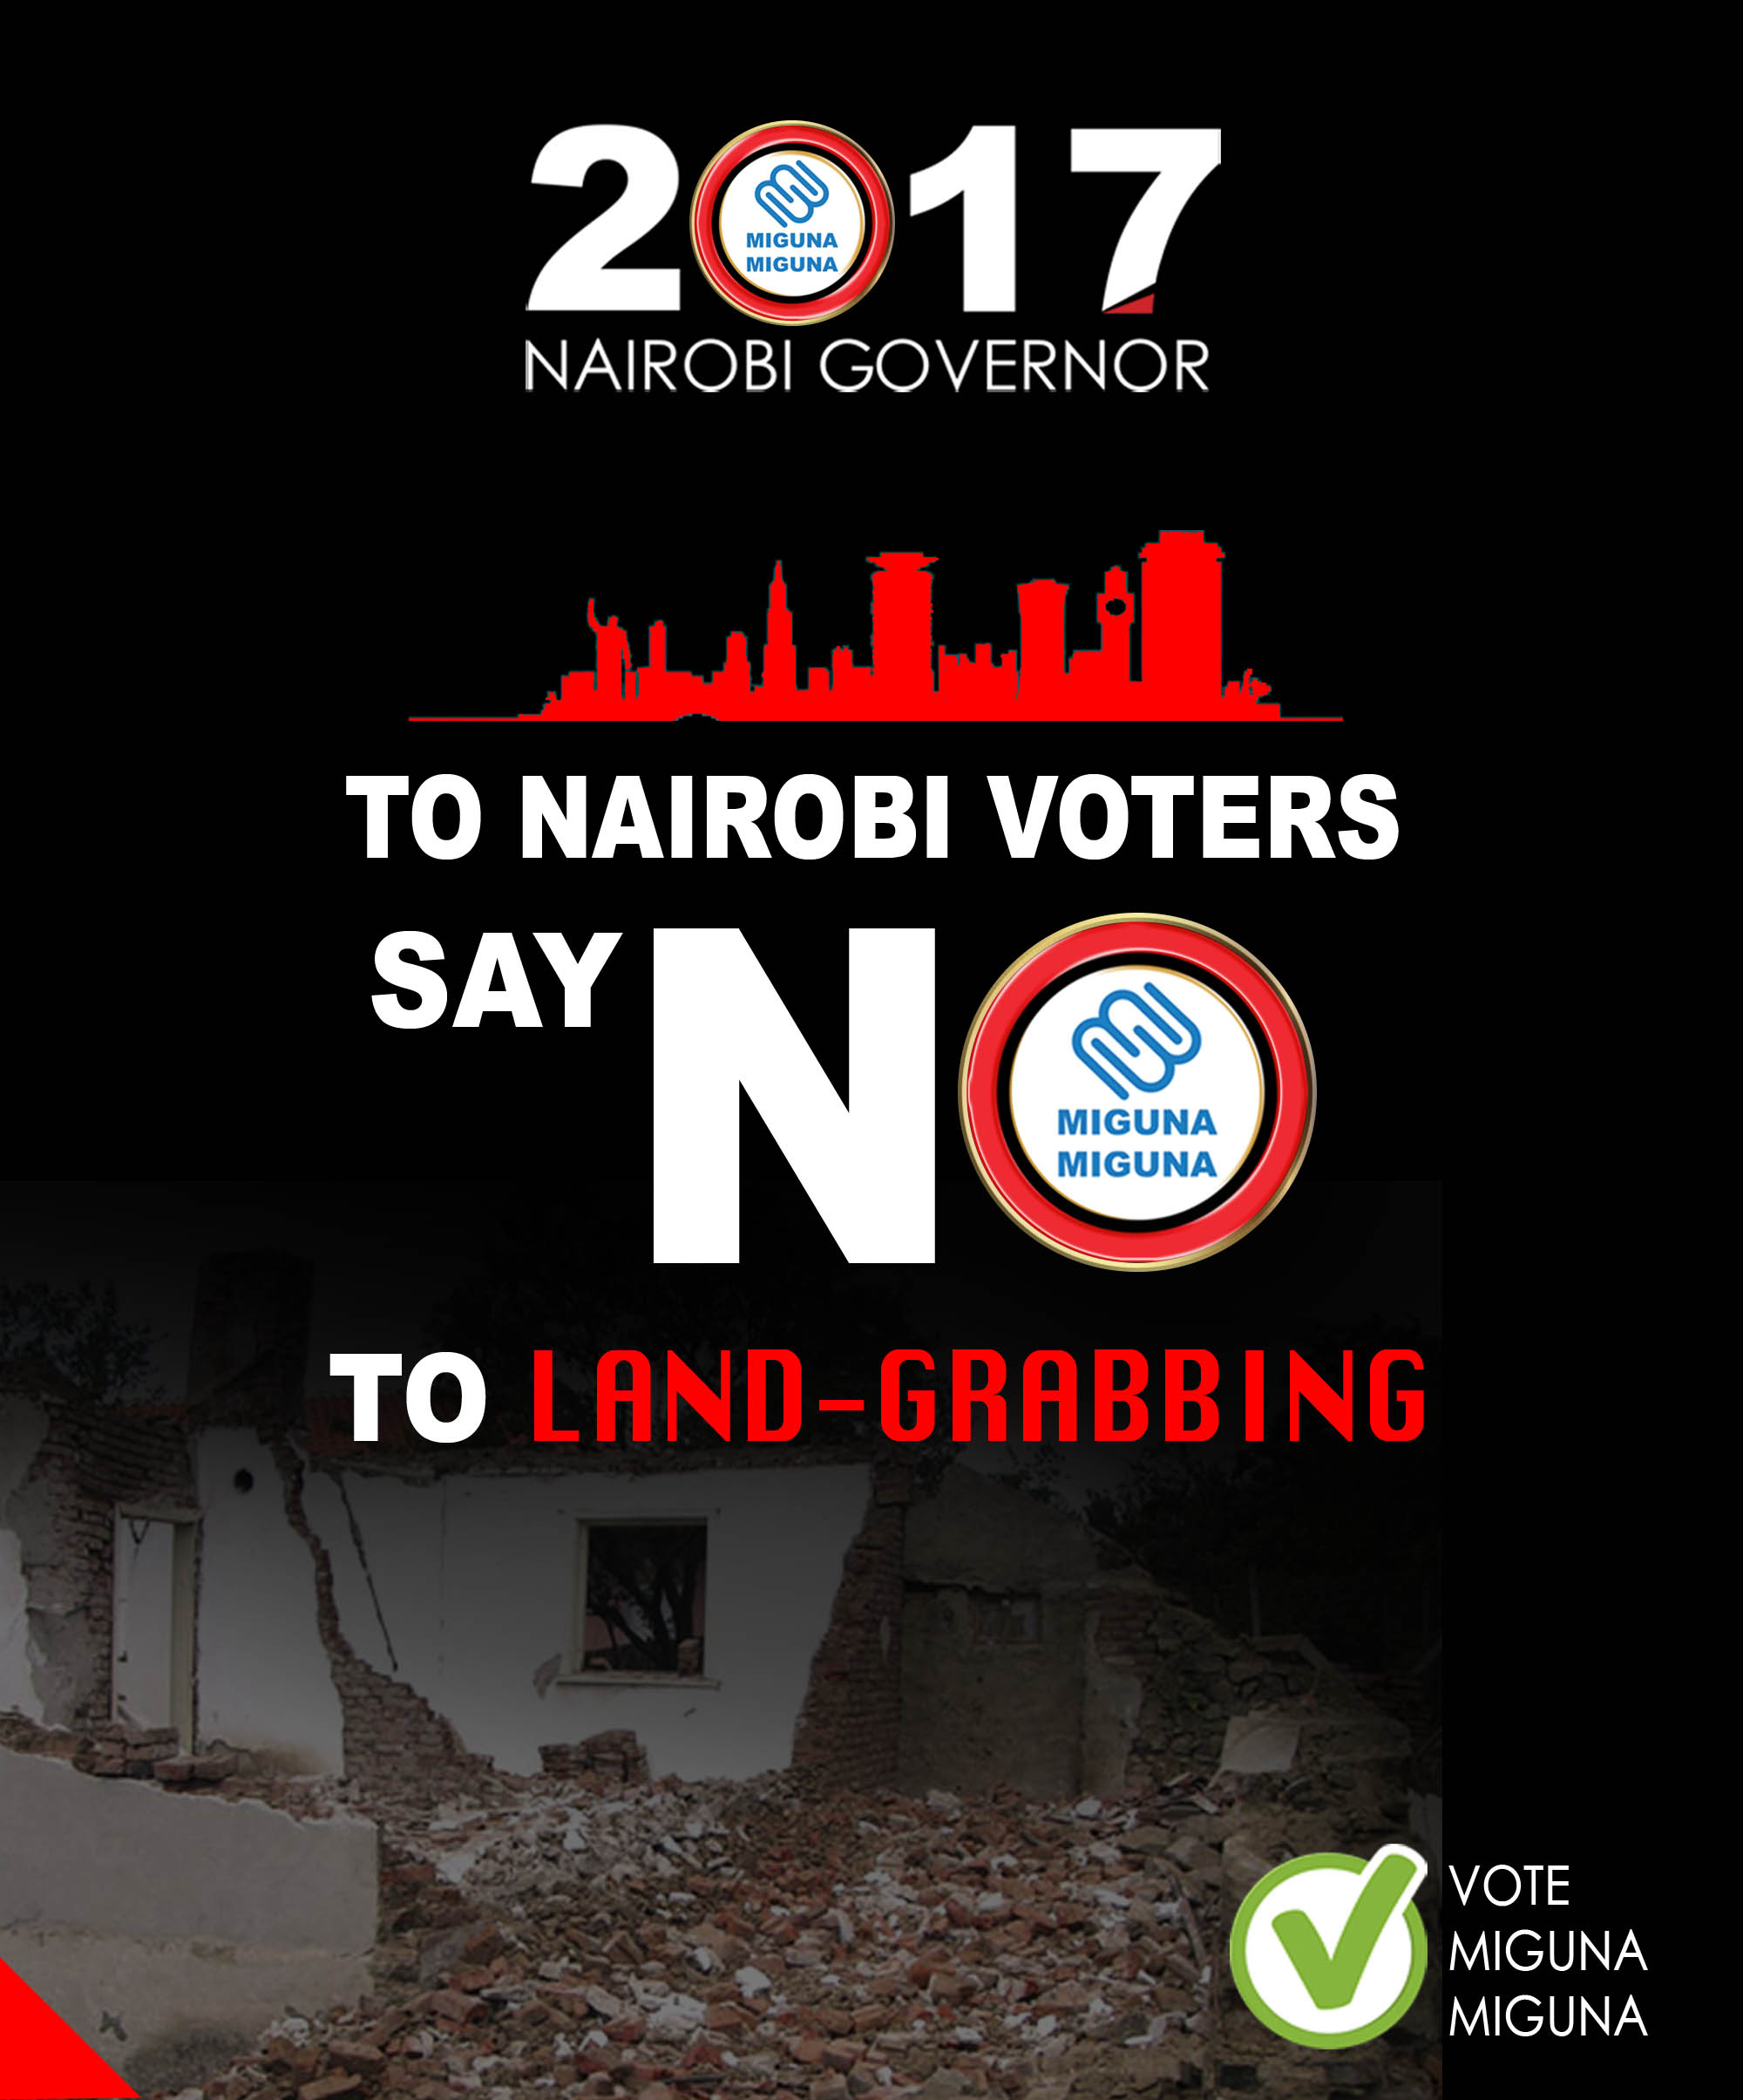 Say NO to land grabbing.